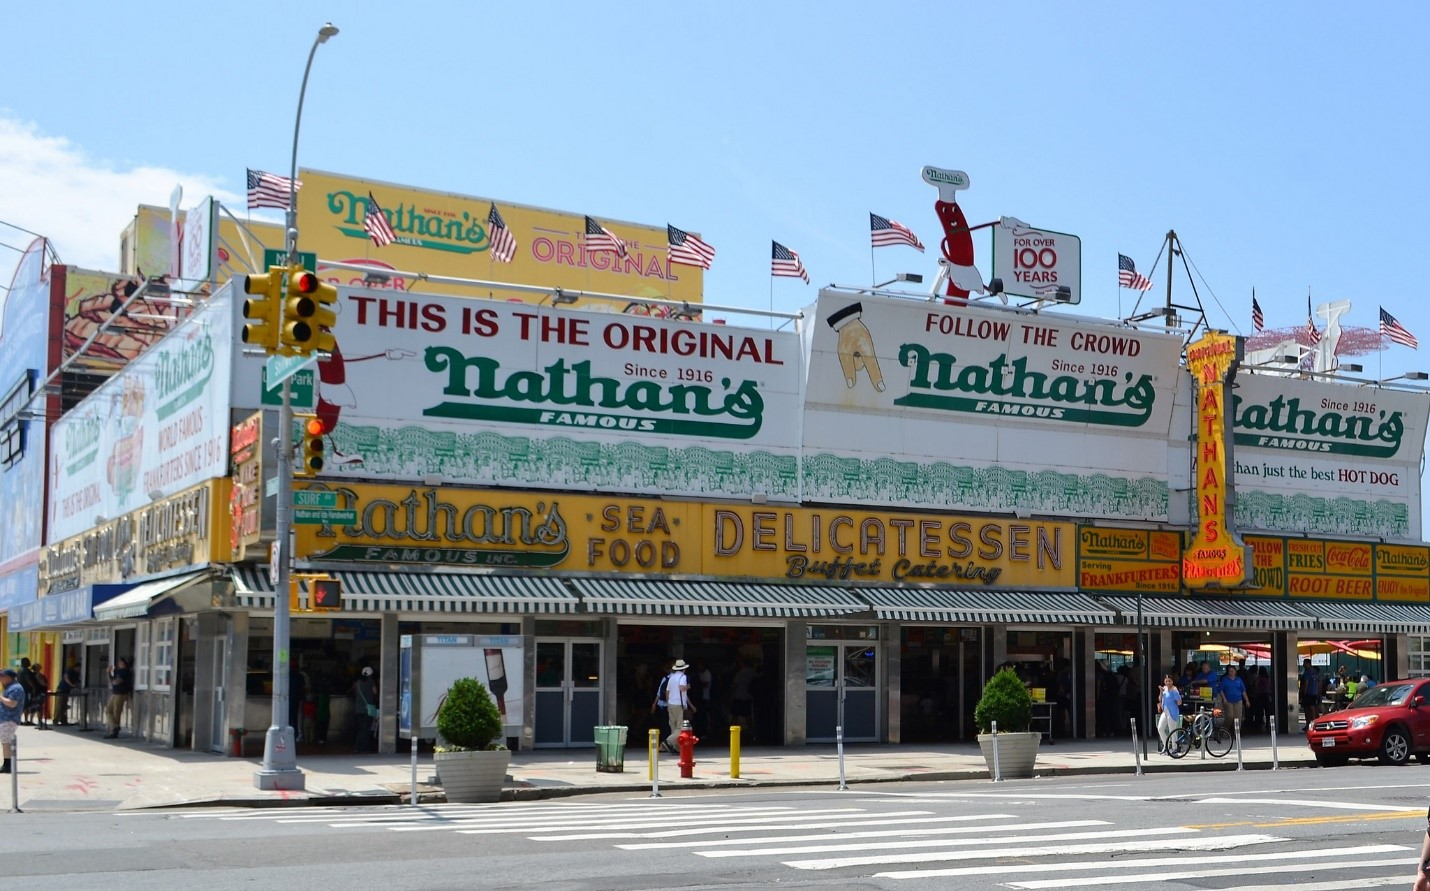 Nathan's iconic hot dogs.